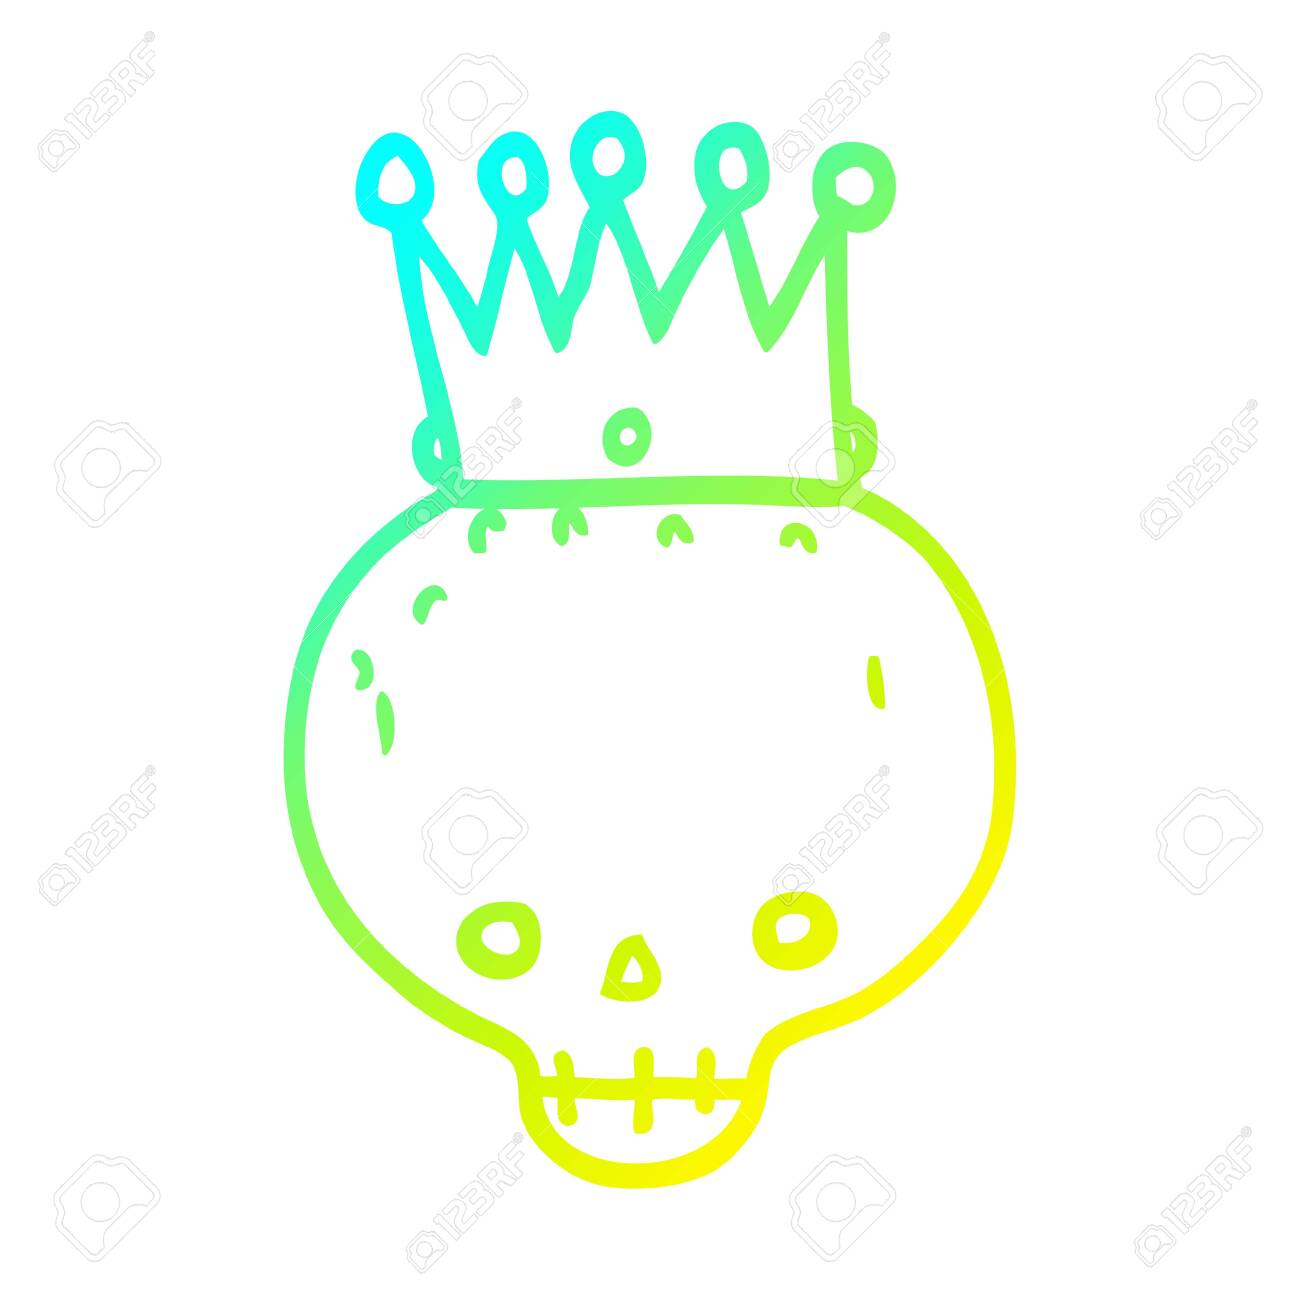 Cold Gradient Line Drawing Of A Cartoon Skull With Crown Royalty Free Cliparts Vectors And Stock Illustration Image 129836124 Regis toomey as bob franklin posing as rocky morgan. cold gradient line drawing of a cartoon skull with crown royalty free cliparts vectors and stock illustration image 129836124